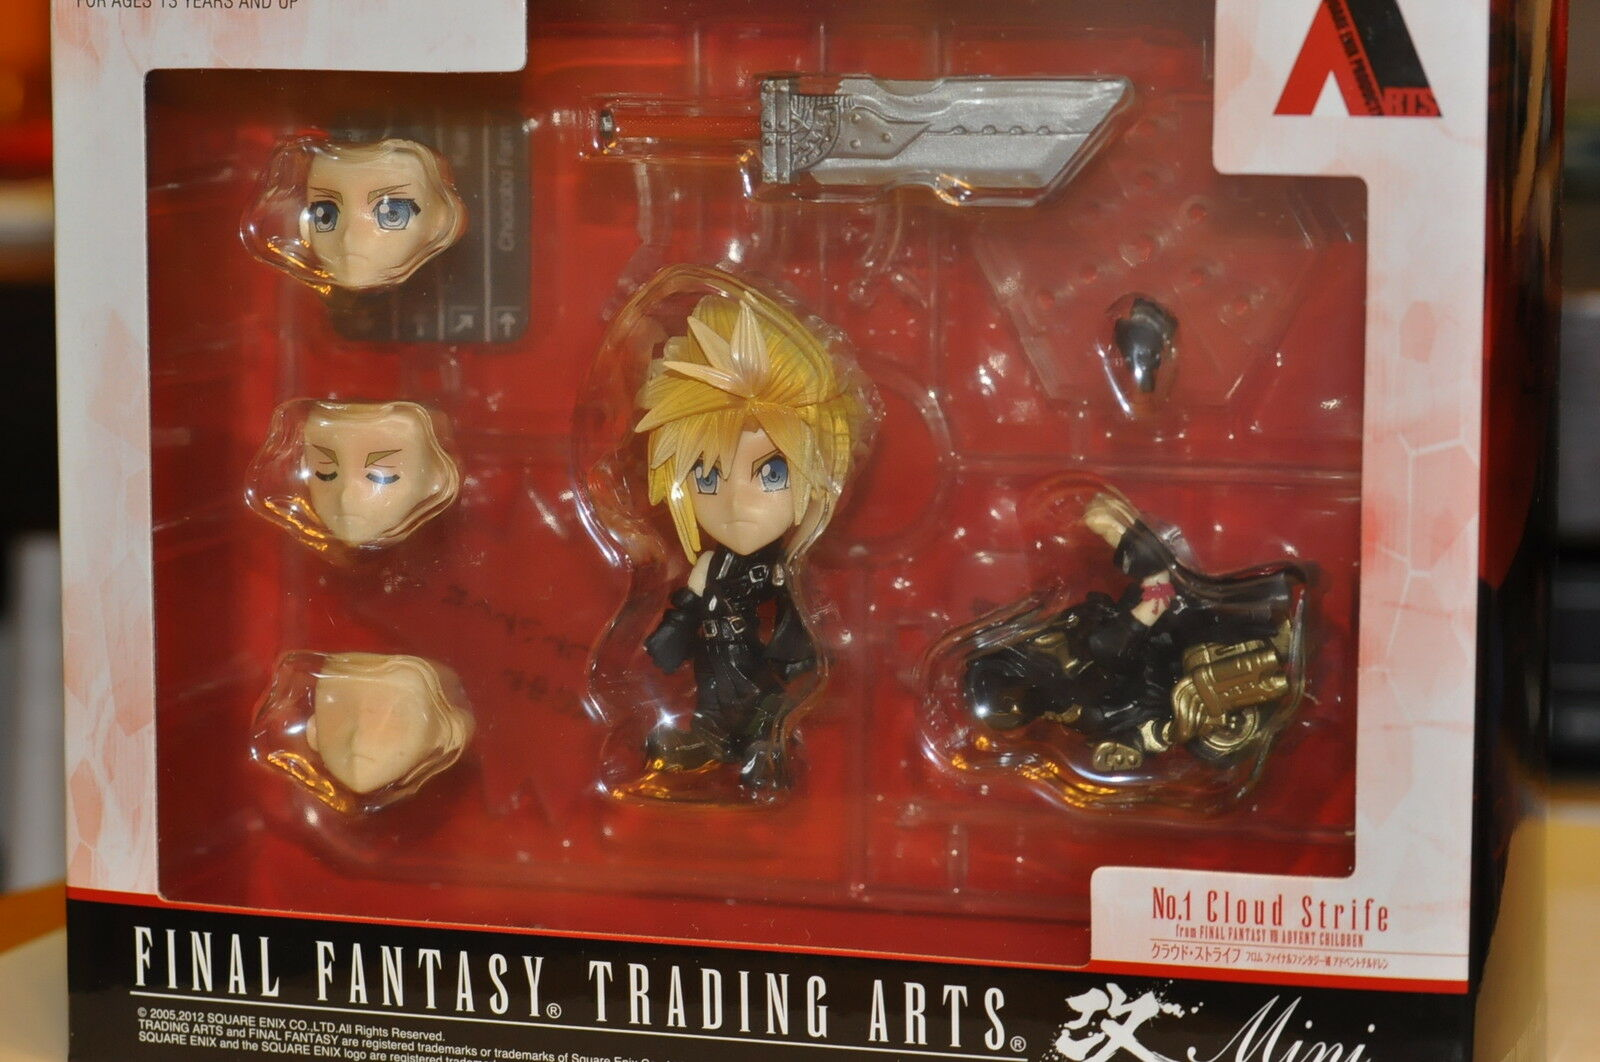 Square enix final fantasy trading kunst kai ff7 cloud strife figur